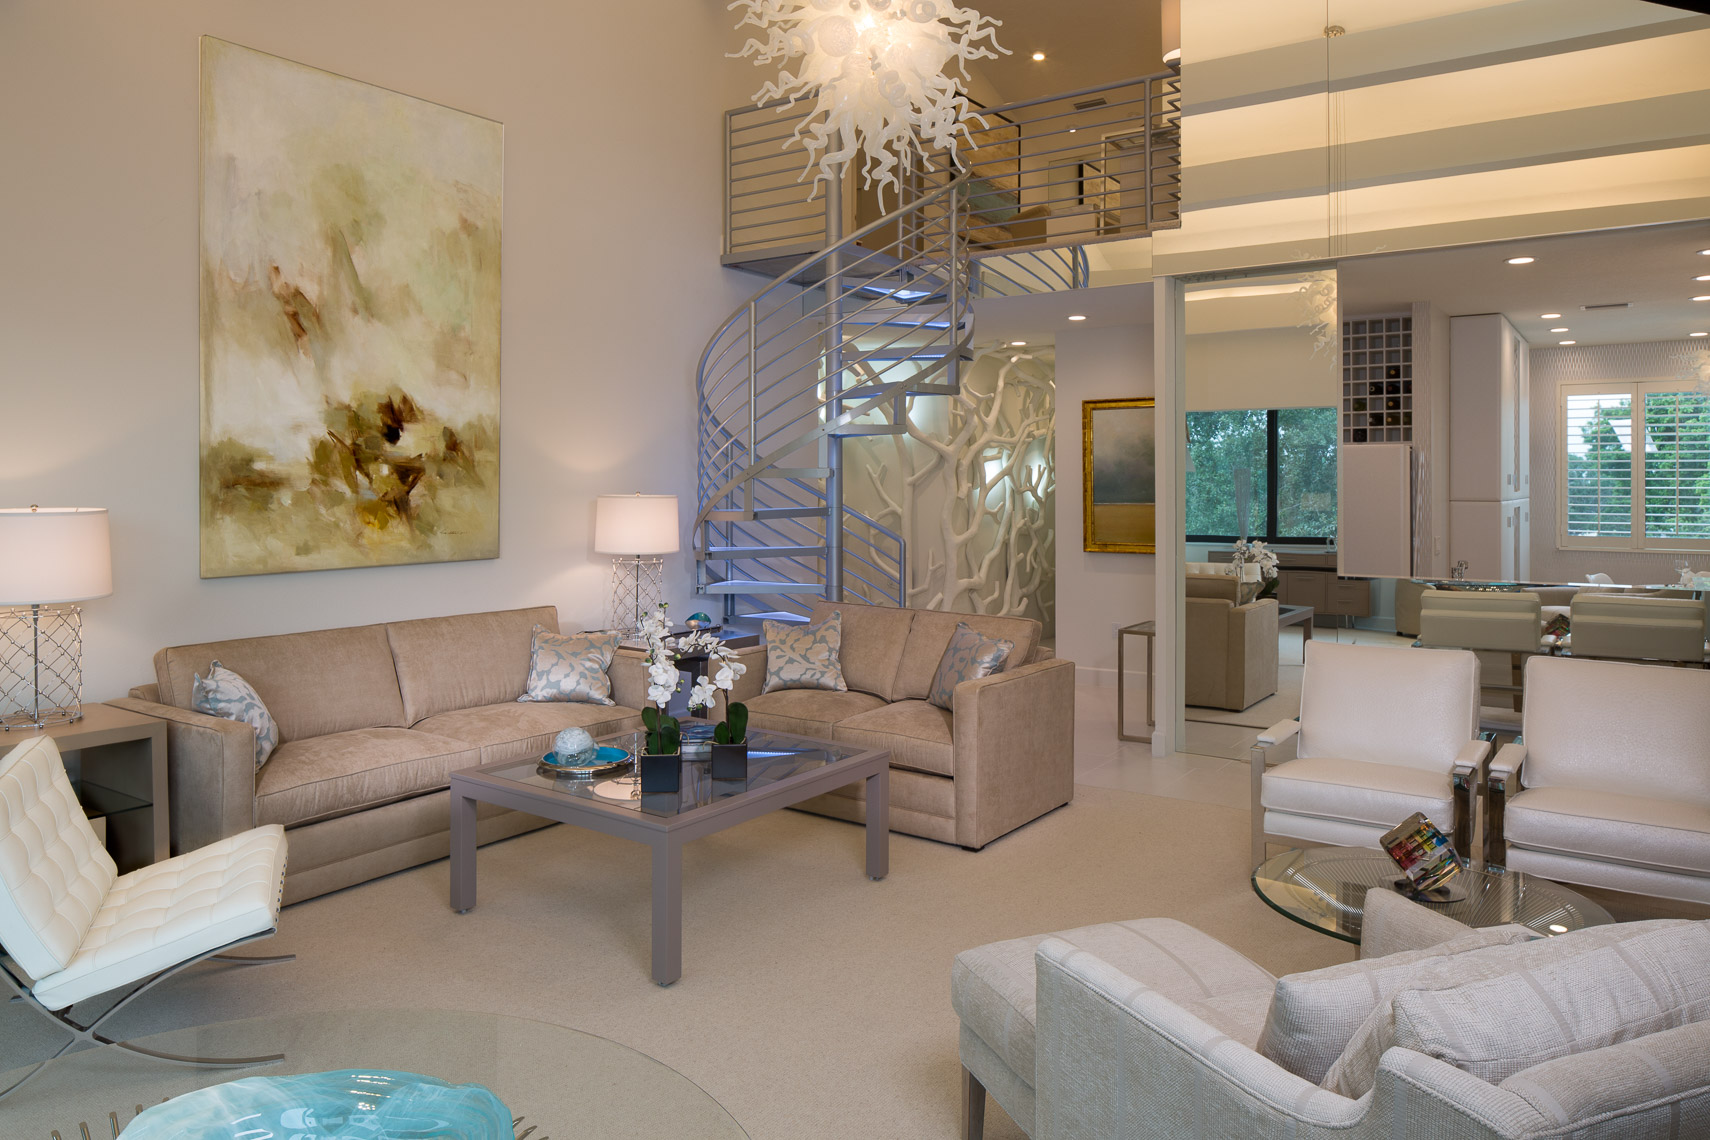 Contemporary Living - Mark Borosch Photography - Sarasota, FL